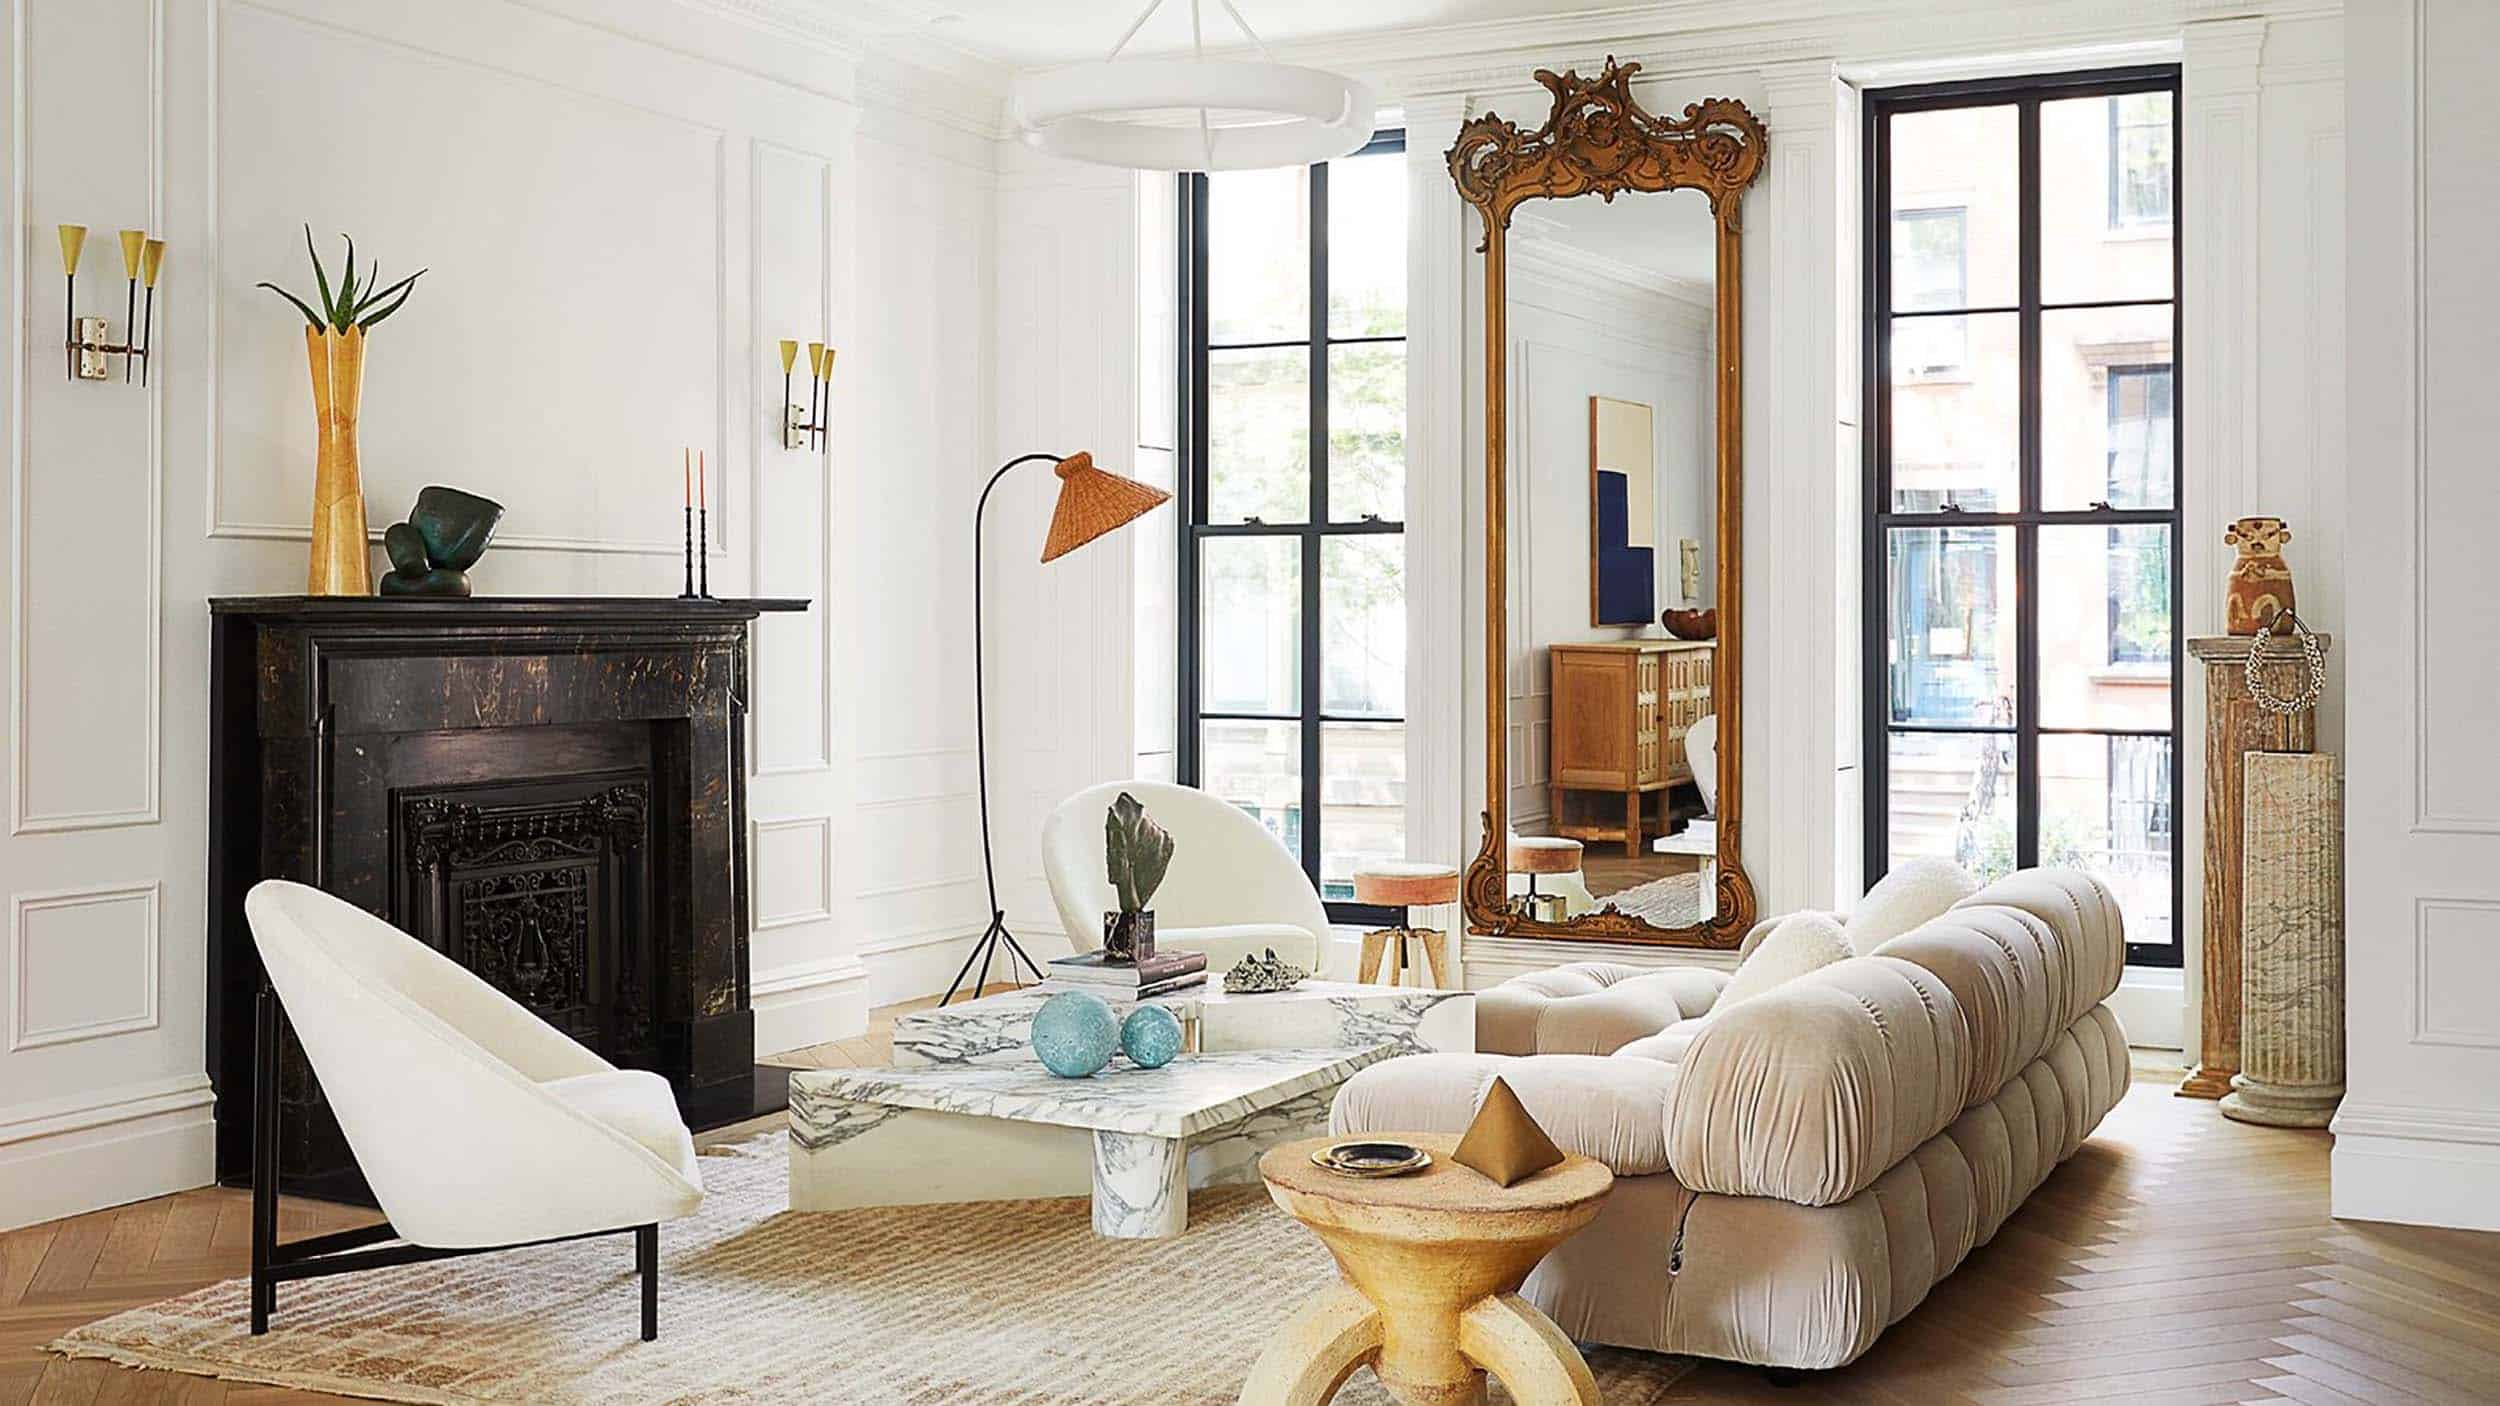 Is This What S Next In Furniture And Decor If So We Re Very Very Into It Emily Henderson